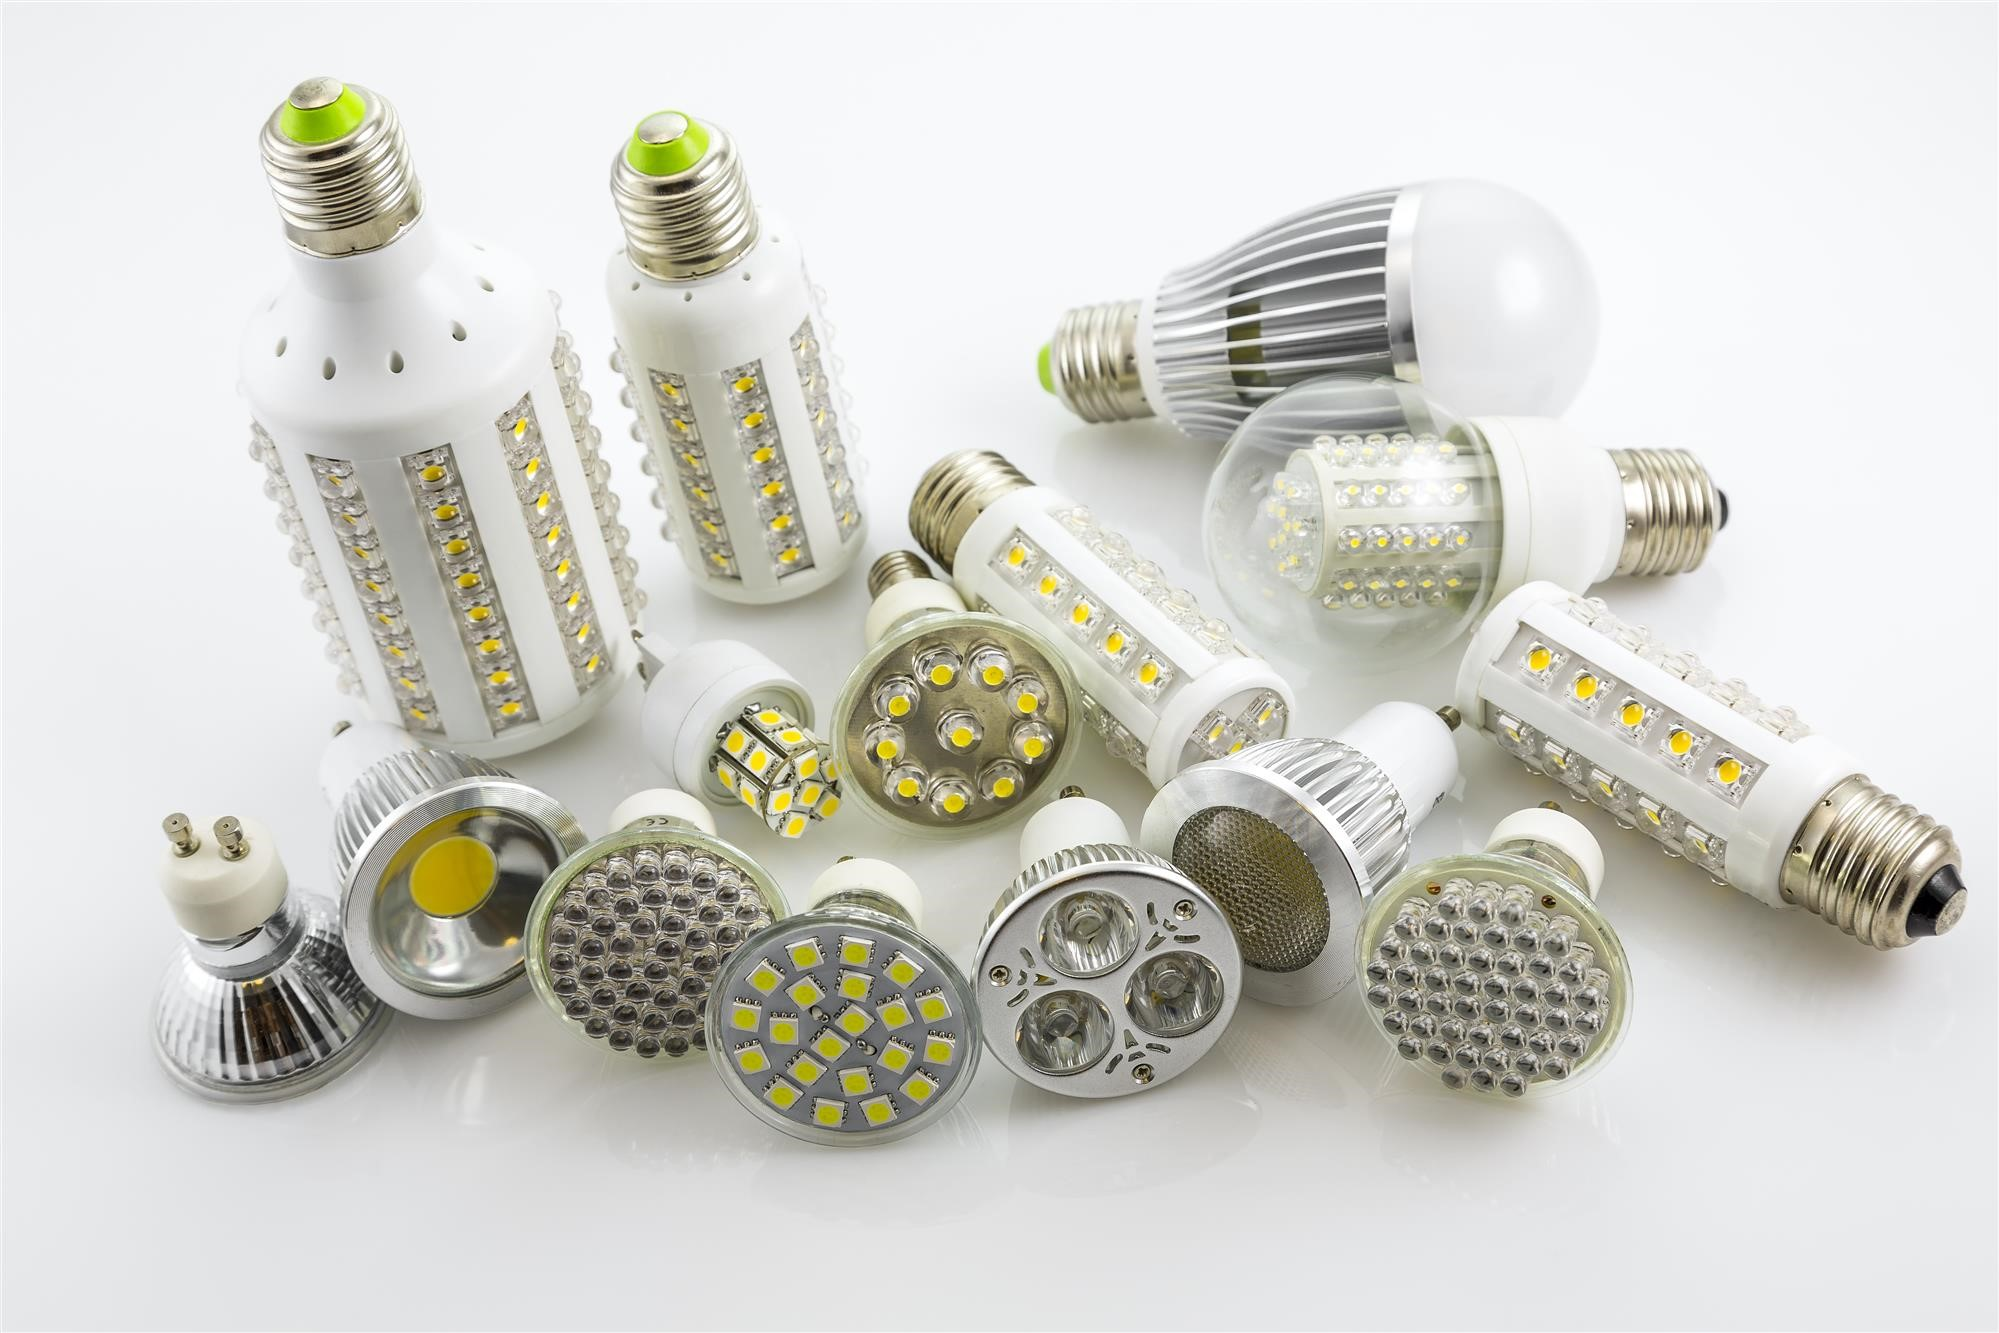 Different Kinds of Light Bulbs for Lighting Up Your Home